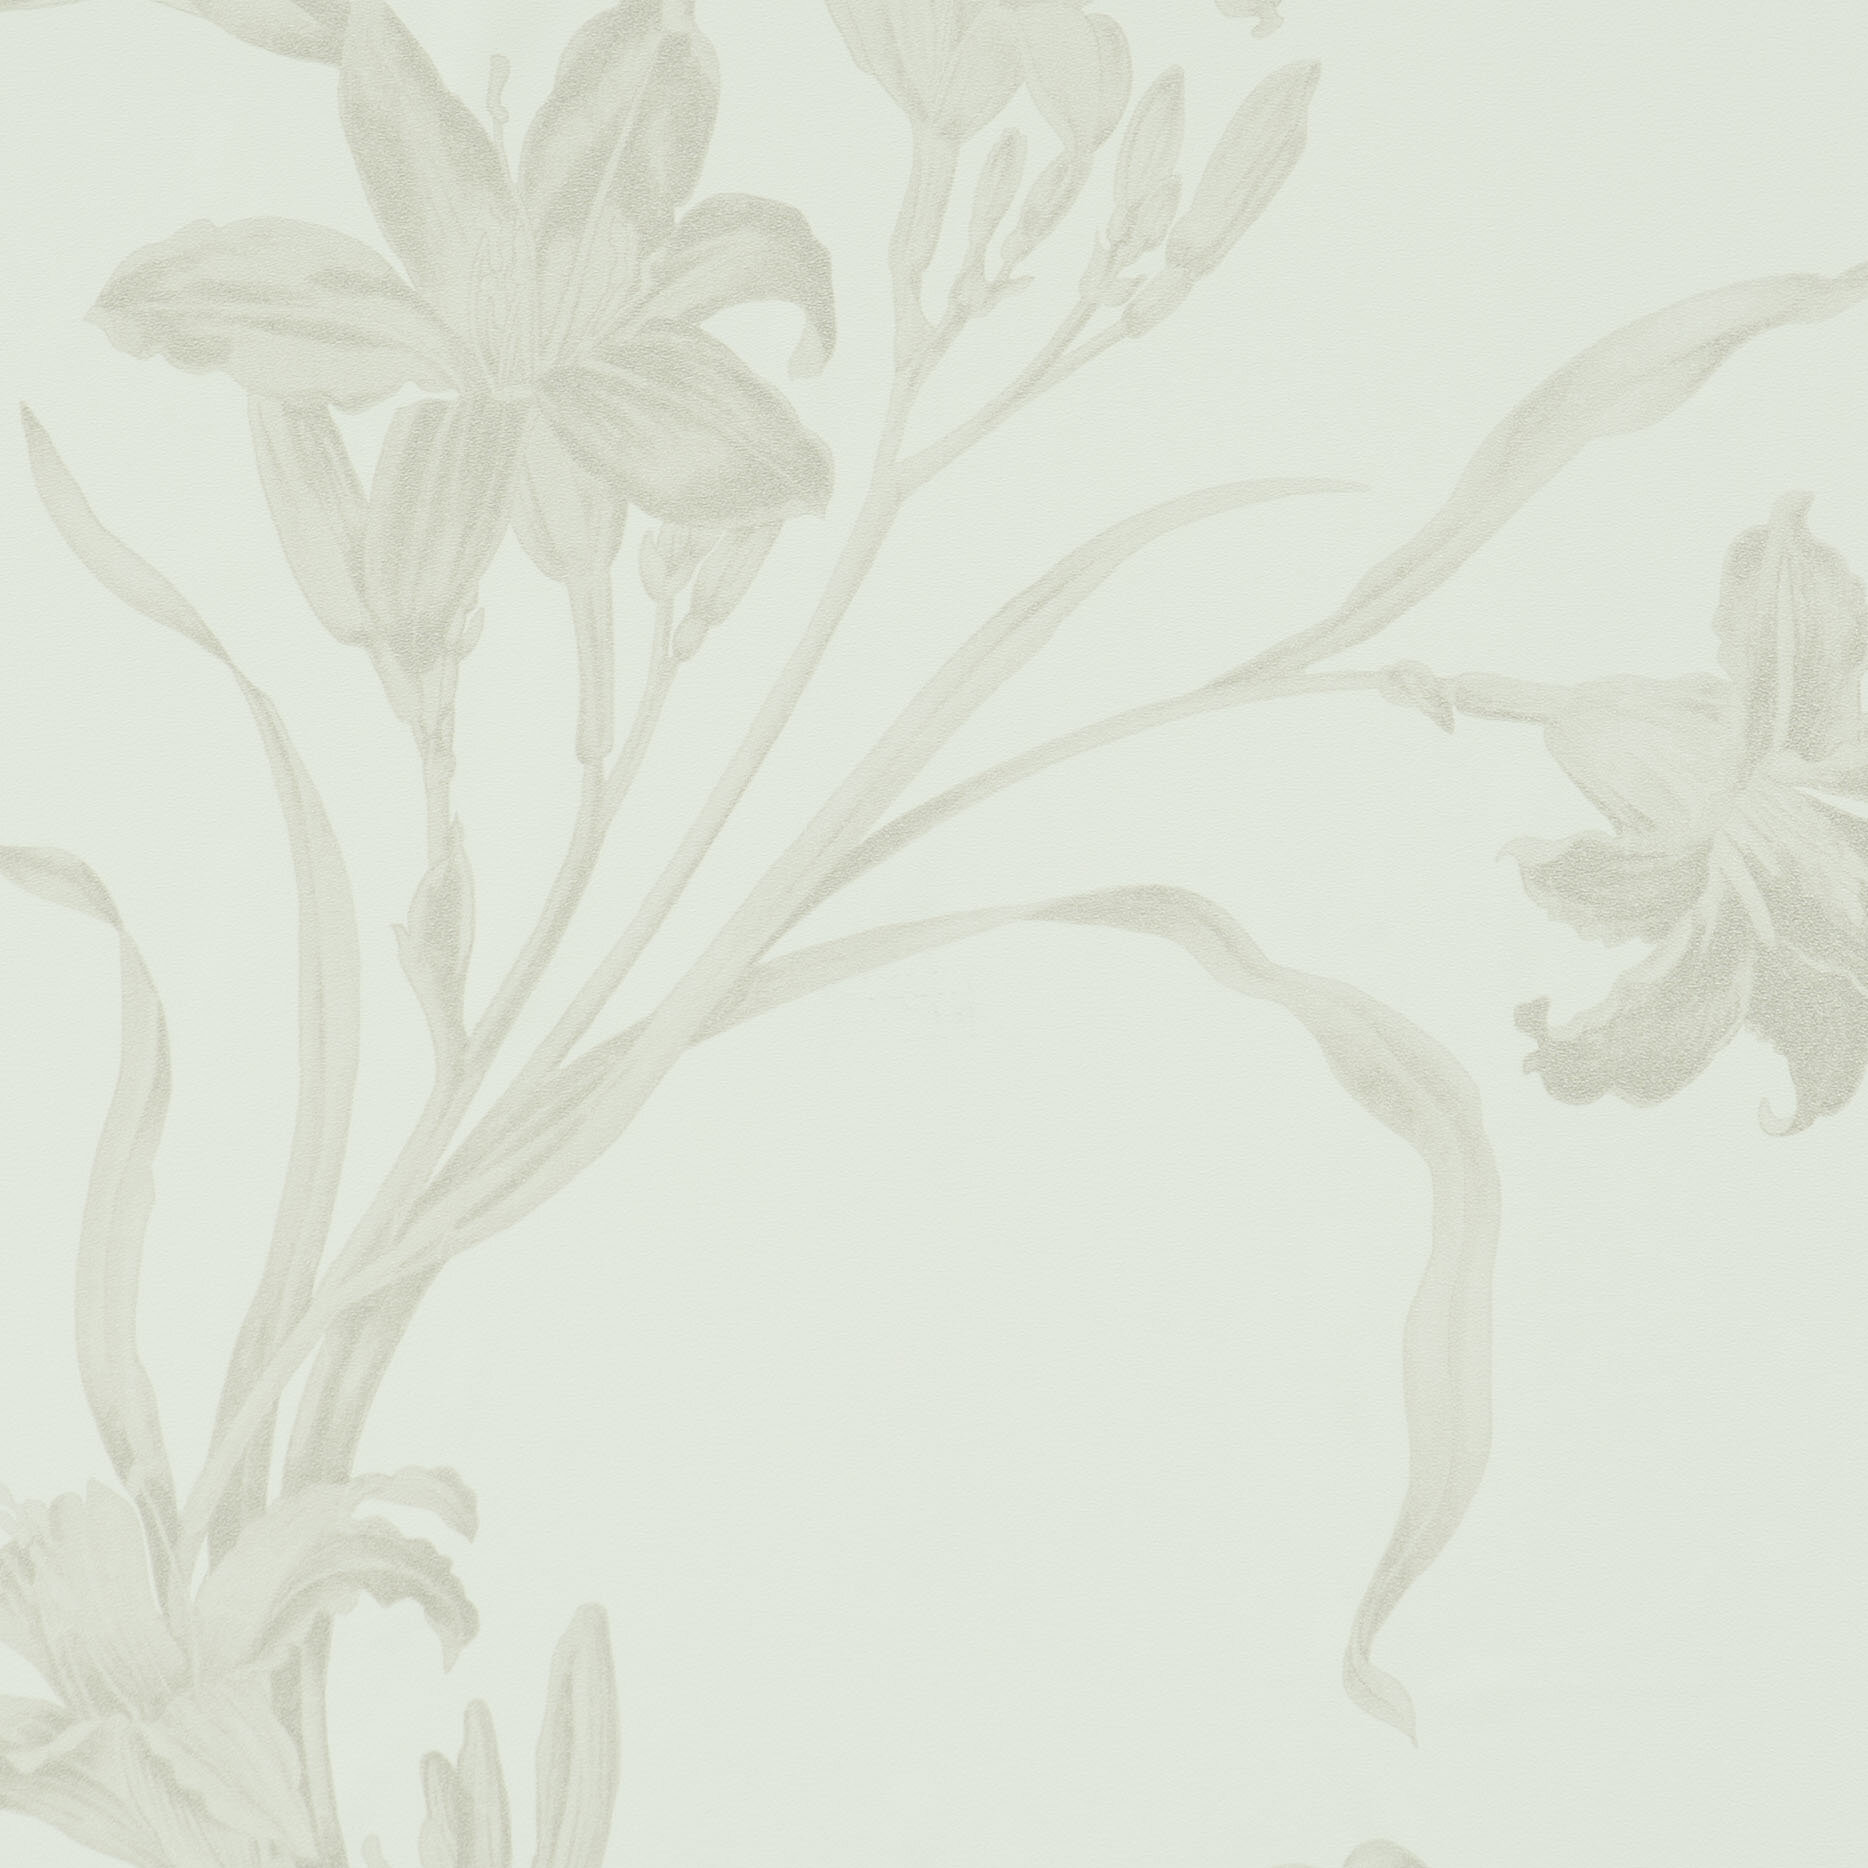 Walls Republic Dainty 32 97 X 20 8 Floral And Botanical